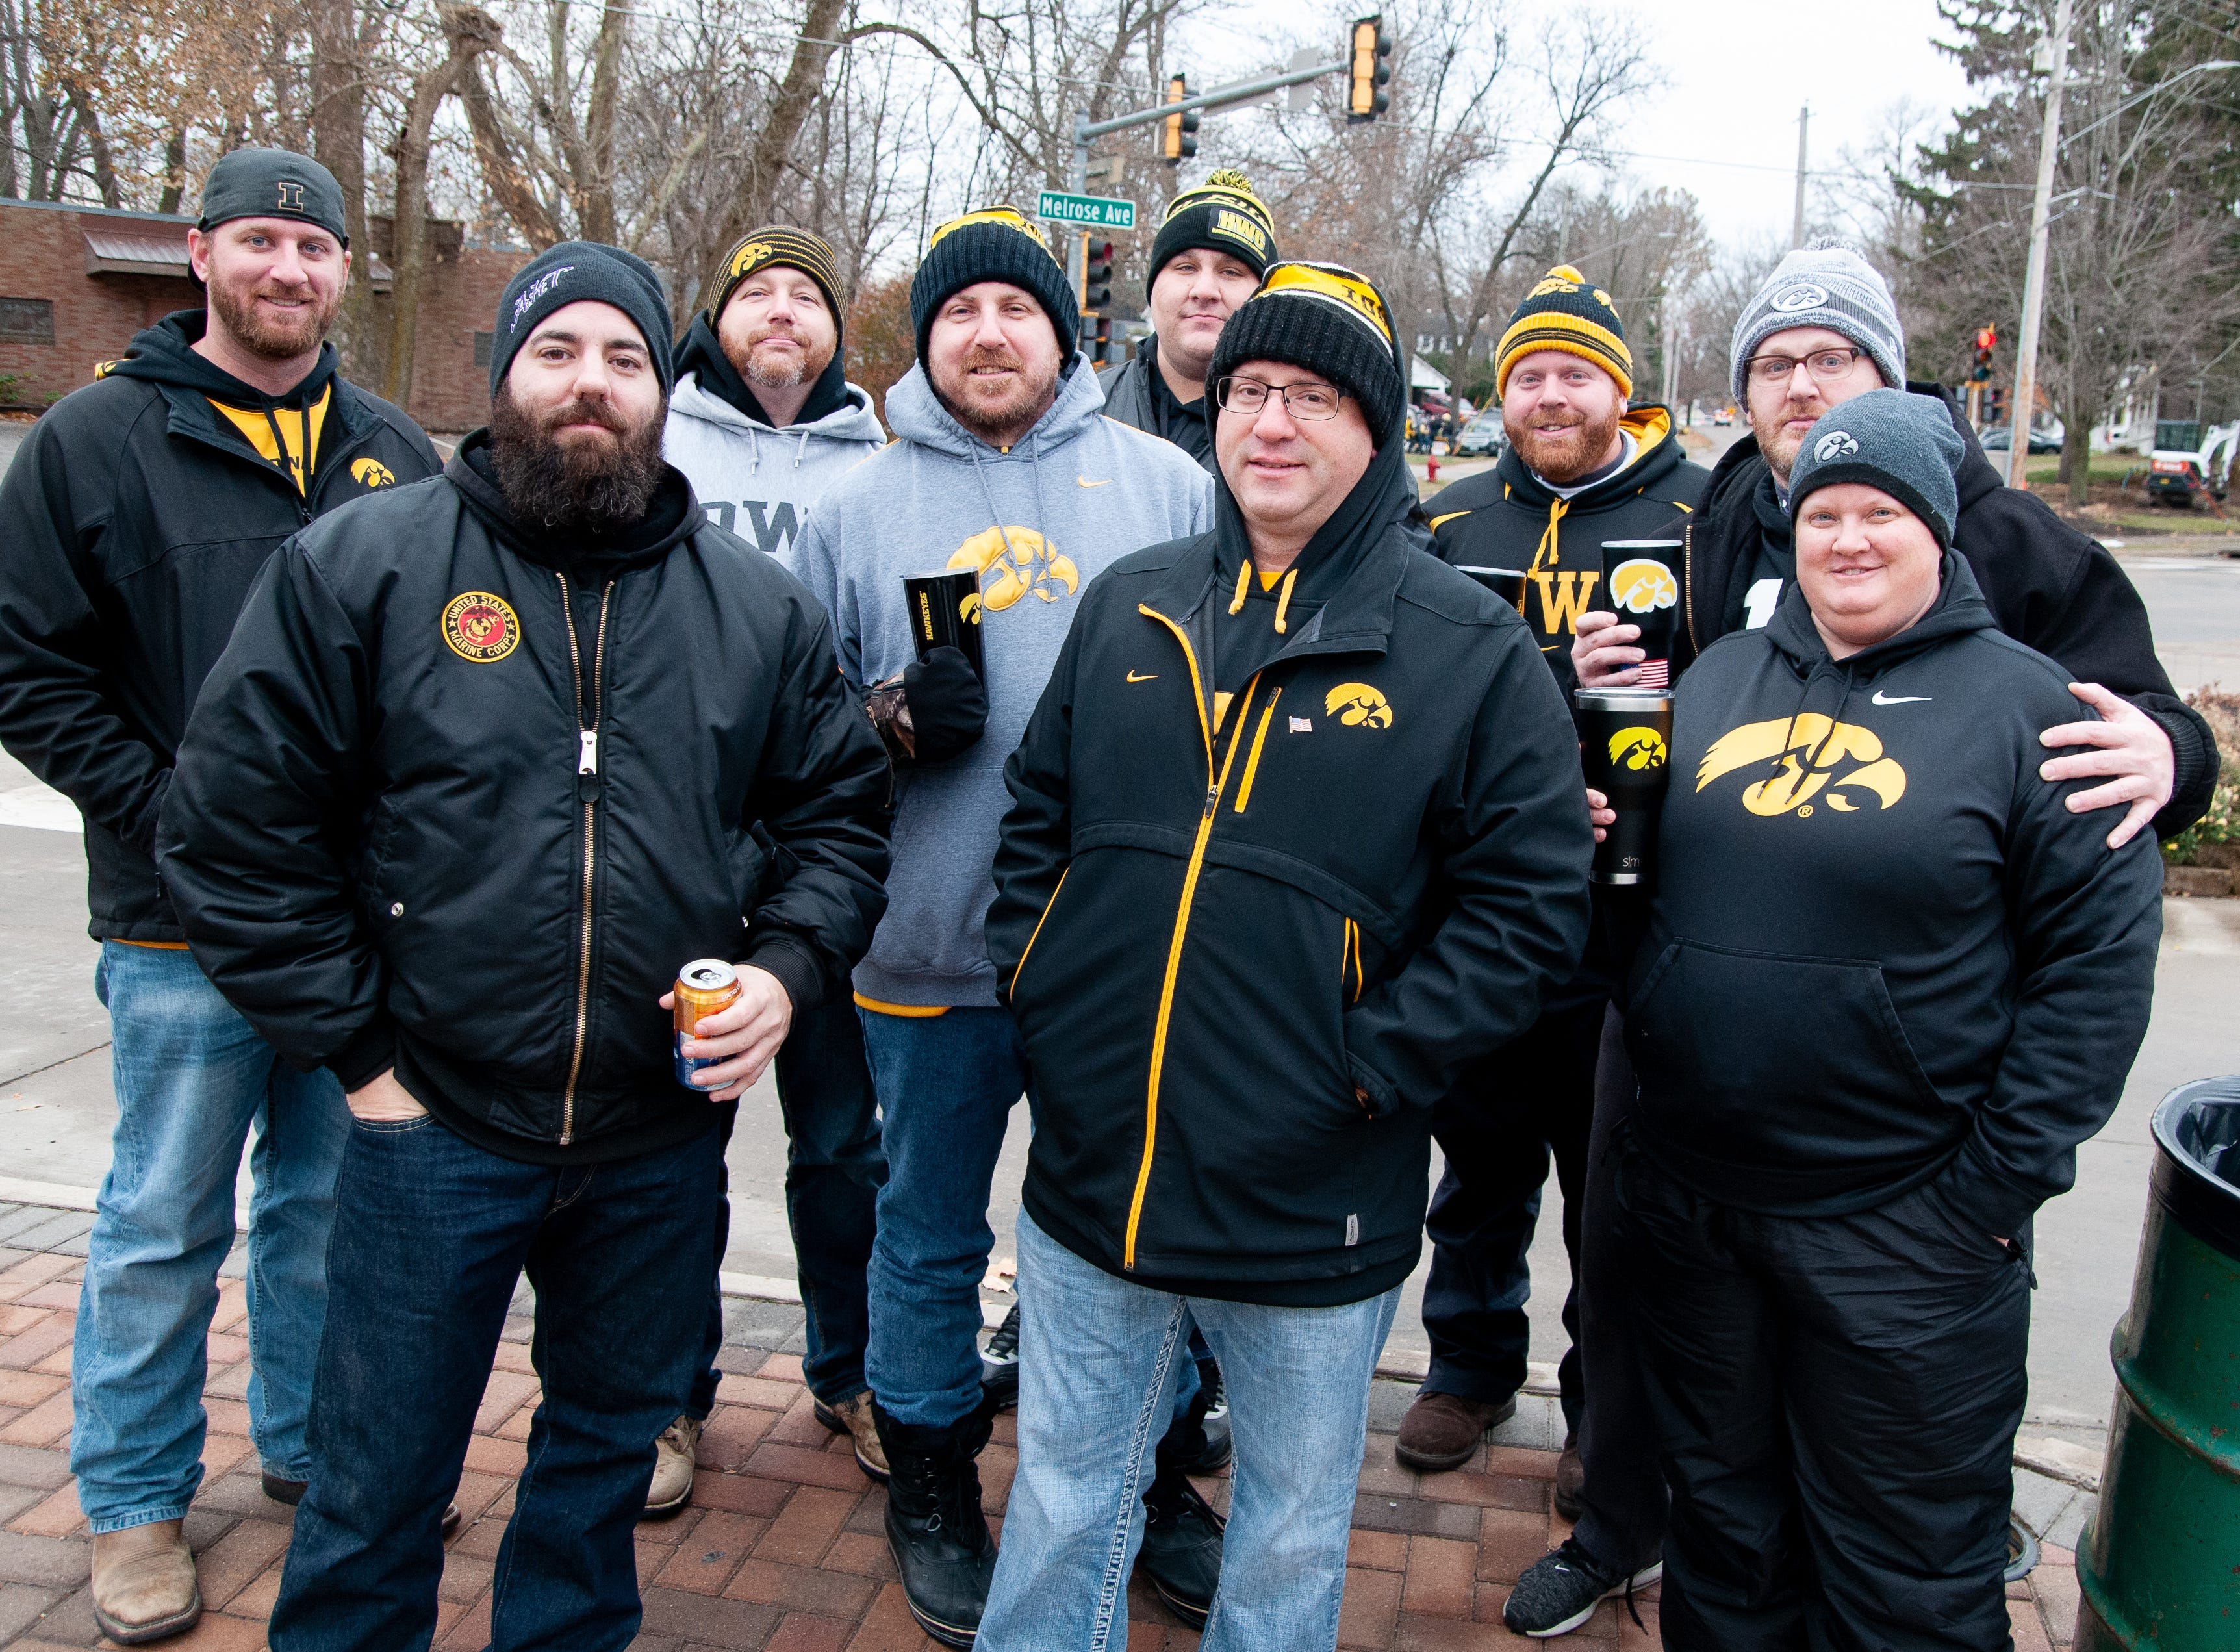 The Melrose Avenue Players Club, of Waterloo, San Antonio and Omaha, Friday, Nov. 23, 2018, while tailgating before the Iowa game against Nebraska in Iowa City.